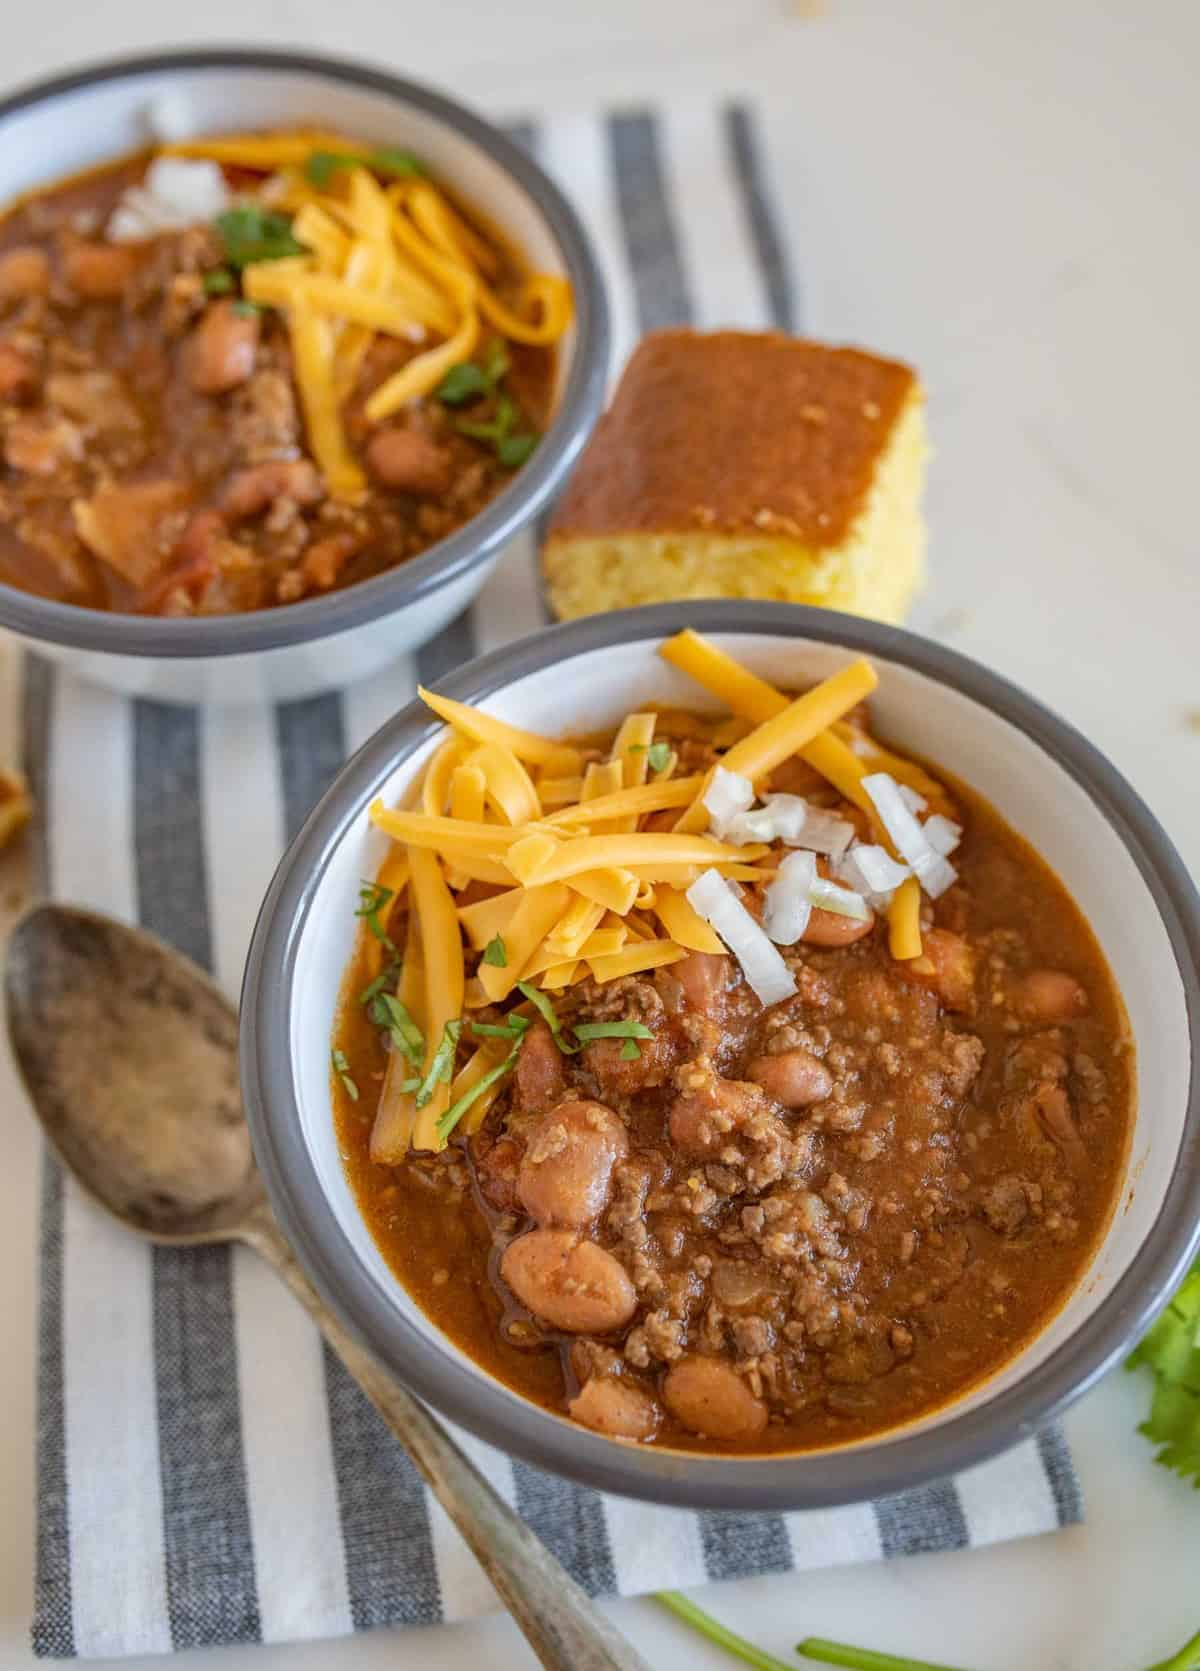 Two bowls of slow cooker chili with cornbread